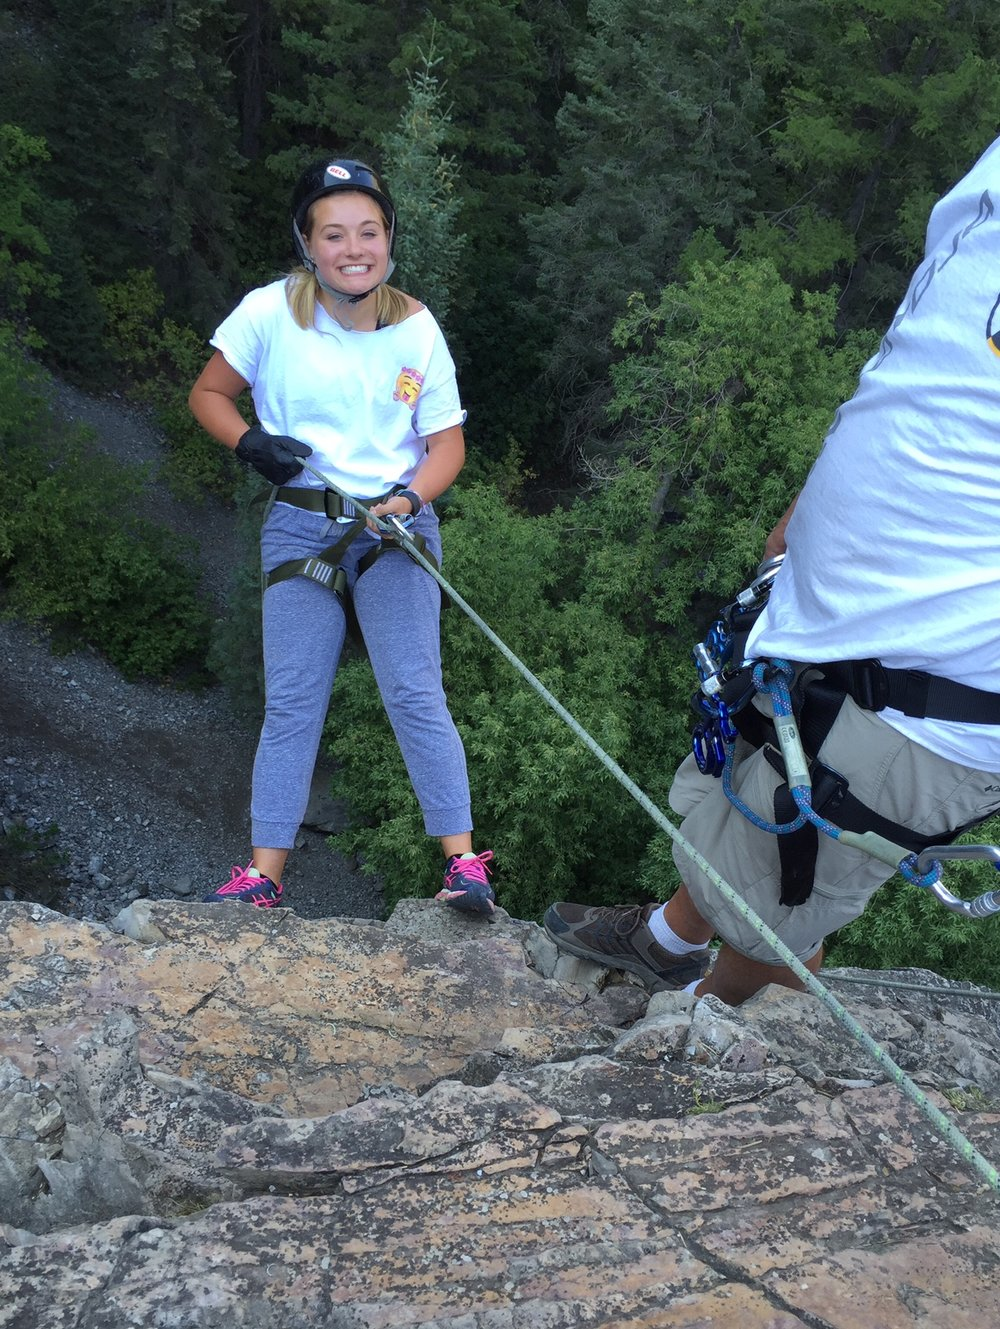 Olivia repelling edited.jpeg